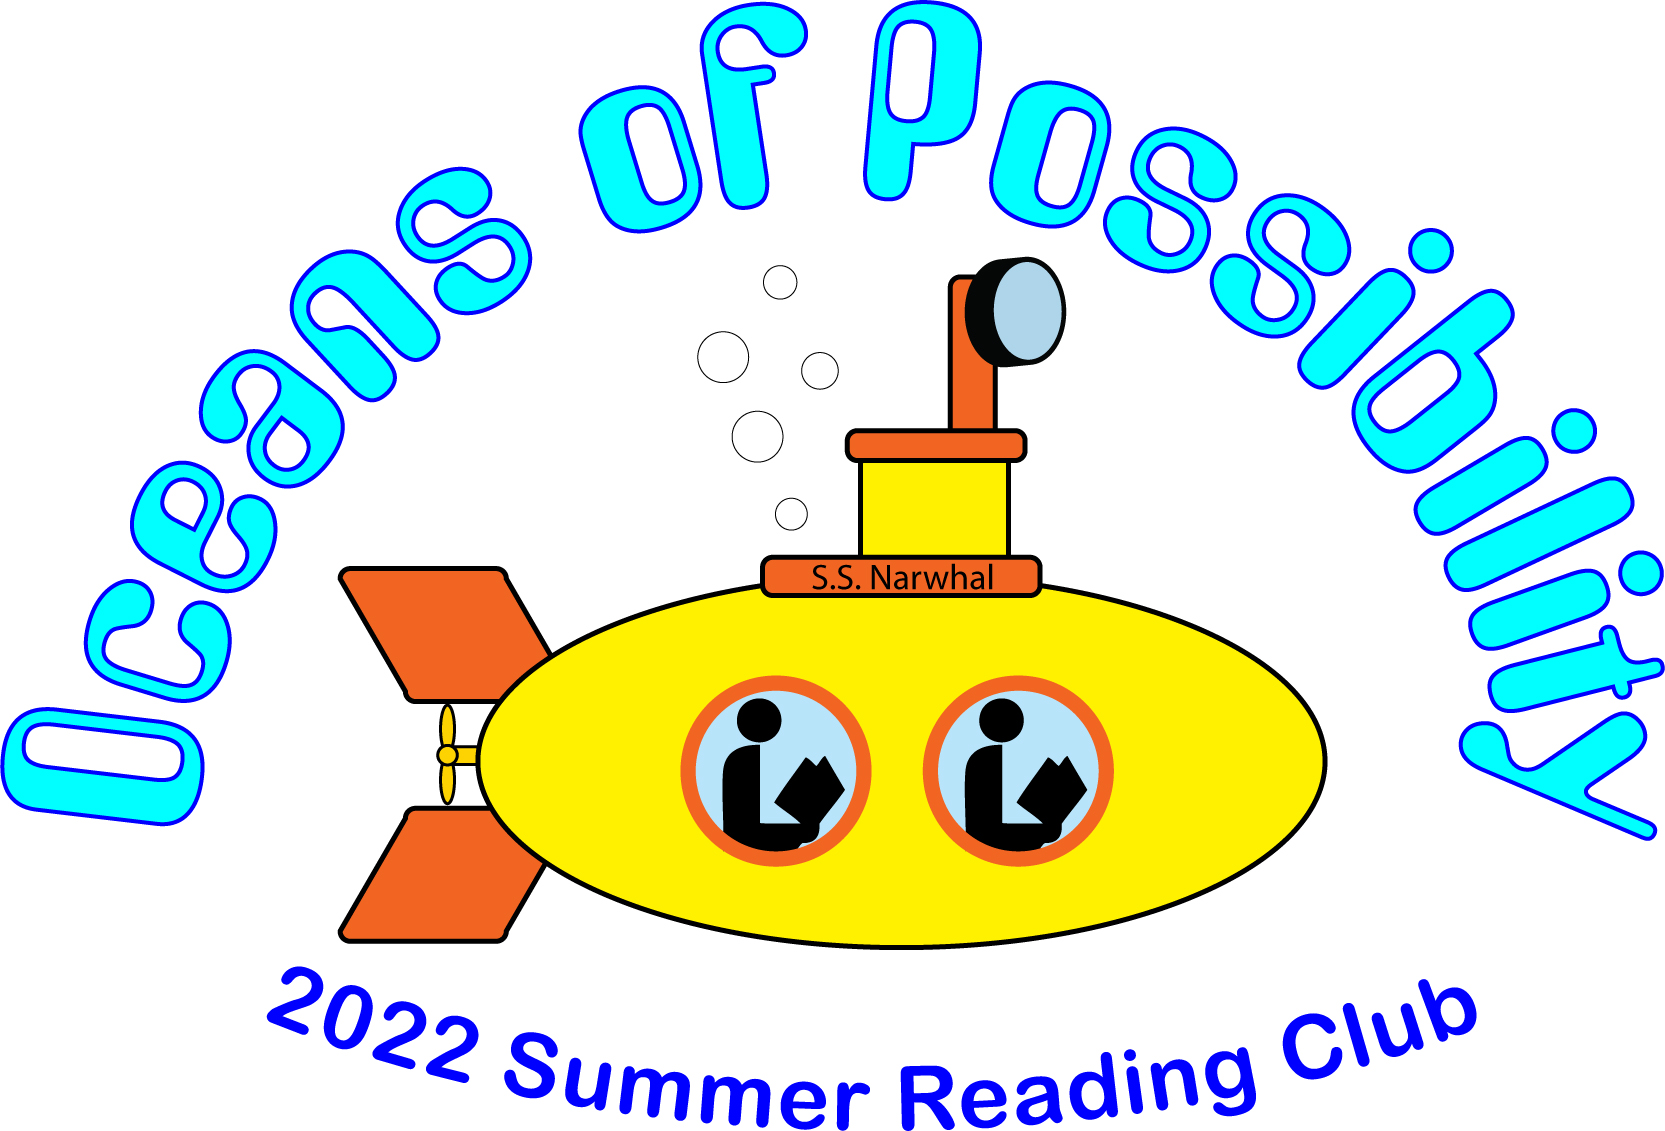 Youth Services Summer Reading Club